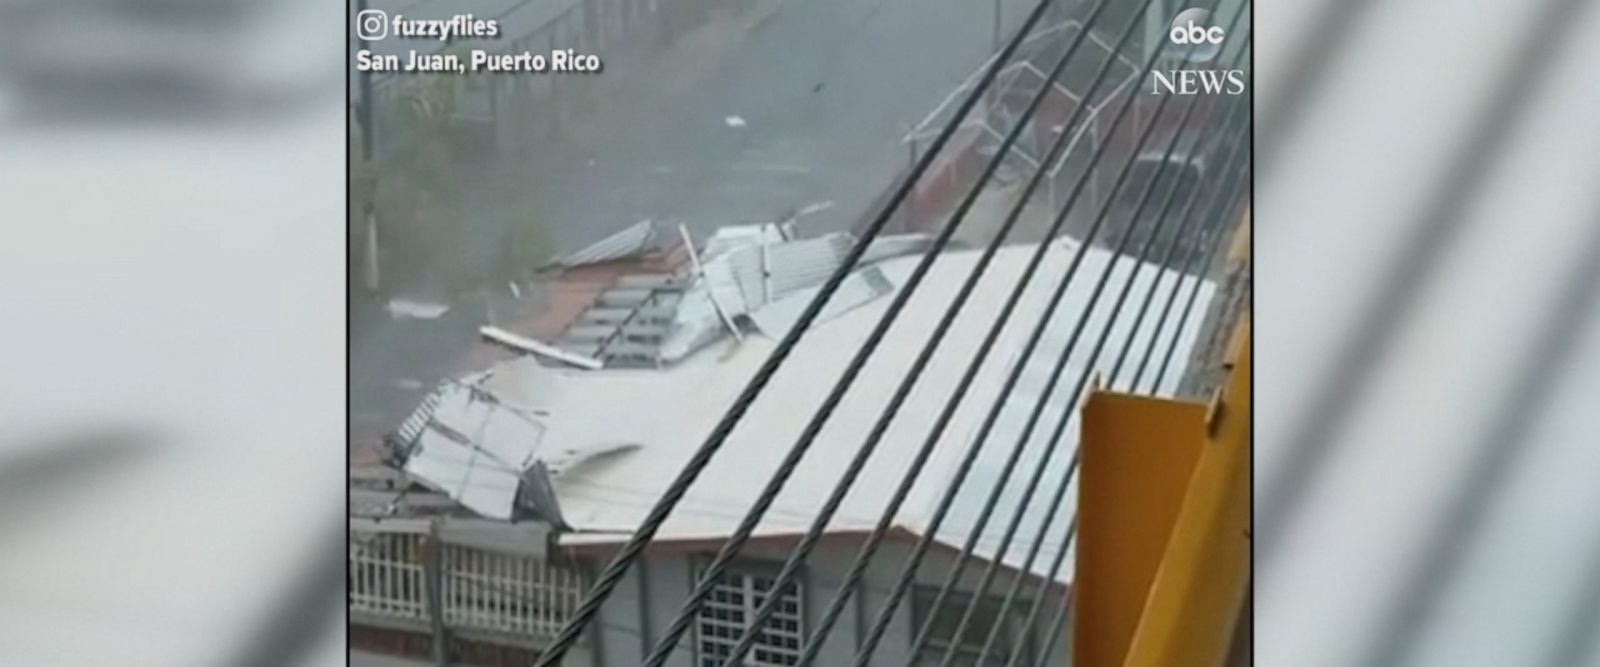 Hurricane Maria bore down on San Juan, Puerto Rico, ripping off buildings' roofs.